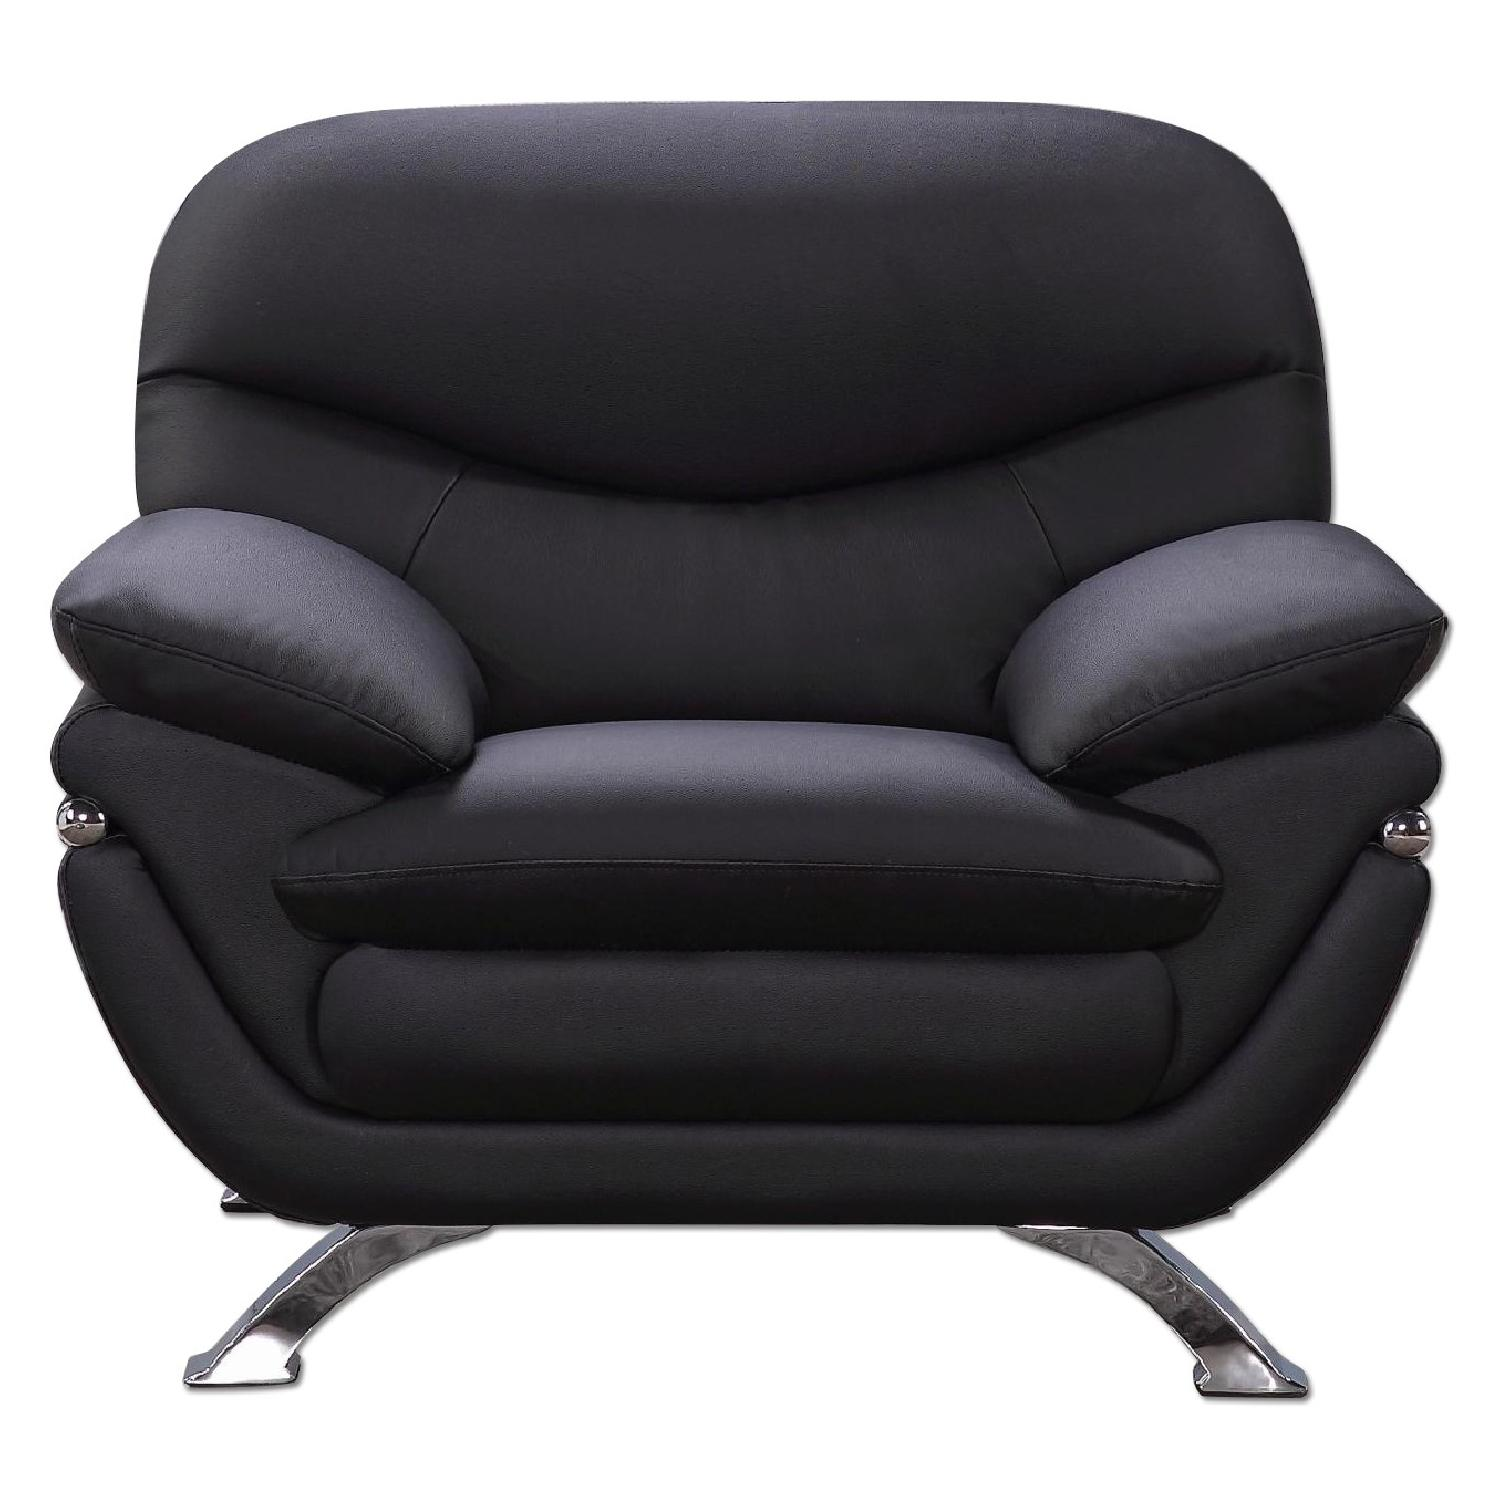 Modern Arm Chair in Black Top Grain Leather w/ Gently Sloped Armrests & Chrome Legs